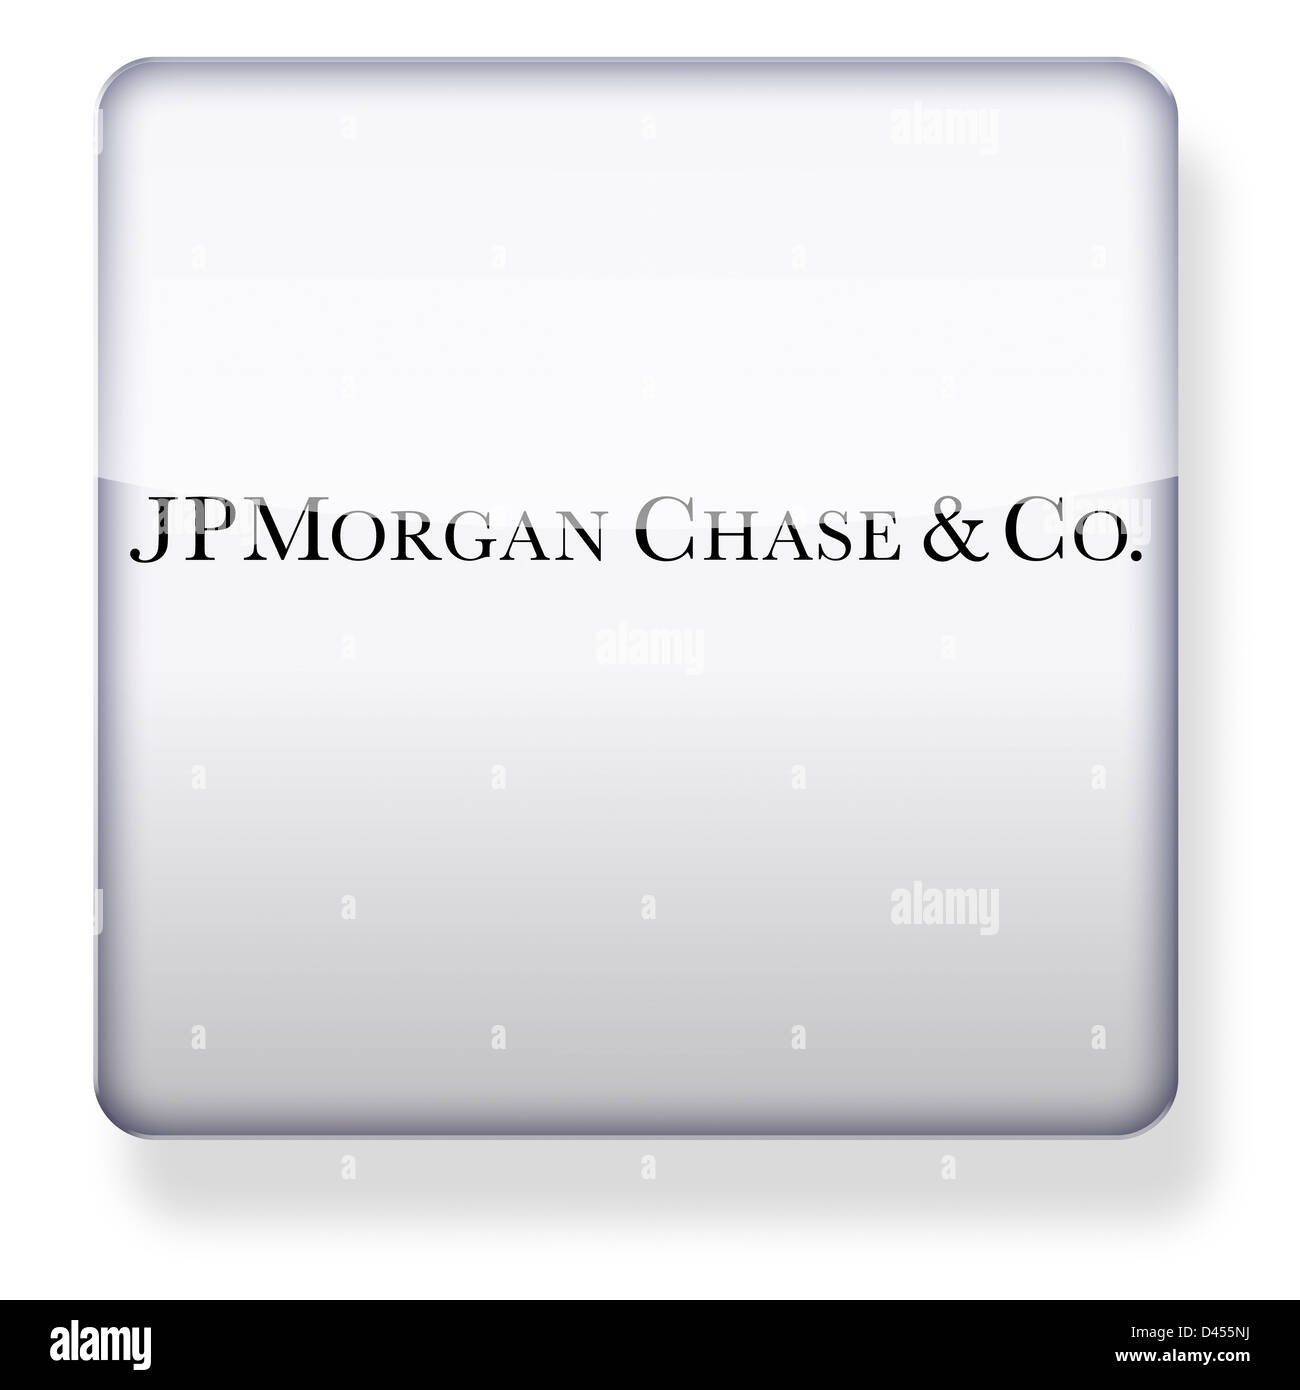 JP Morgan Chase logo as an app icon. Clipping path included. Stock Photo